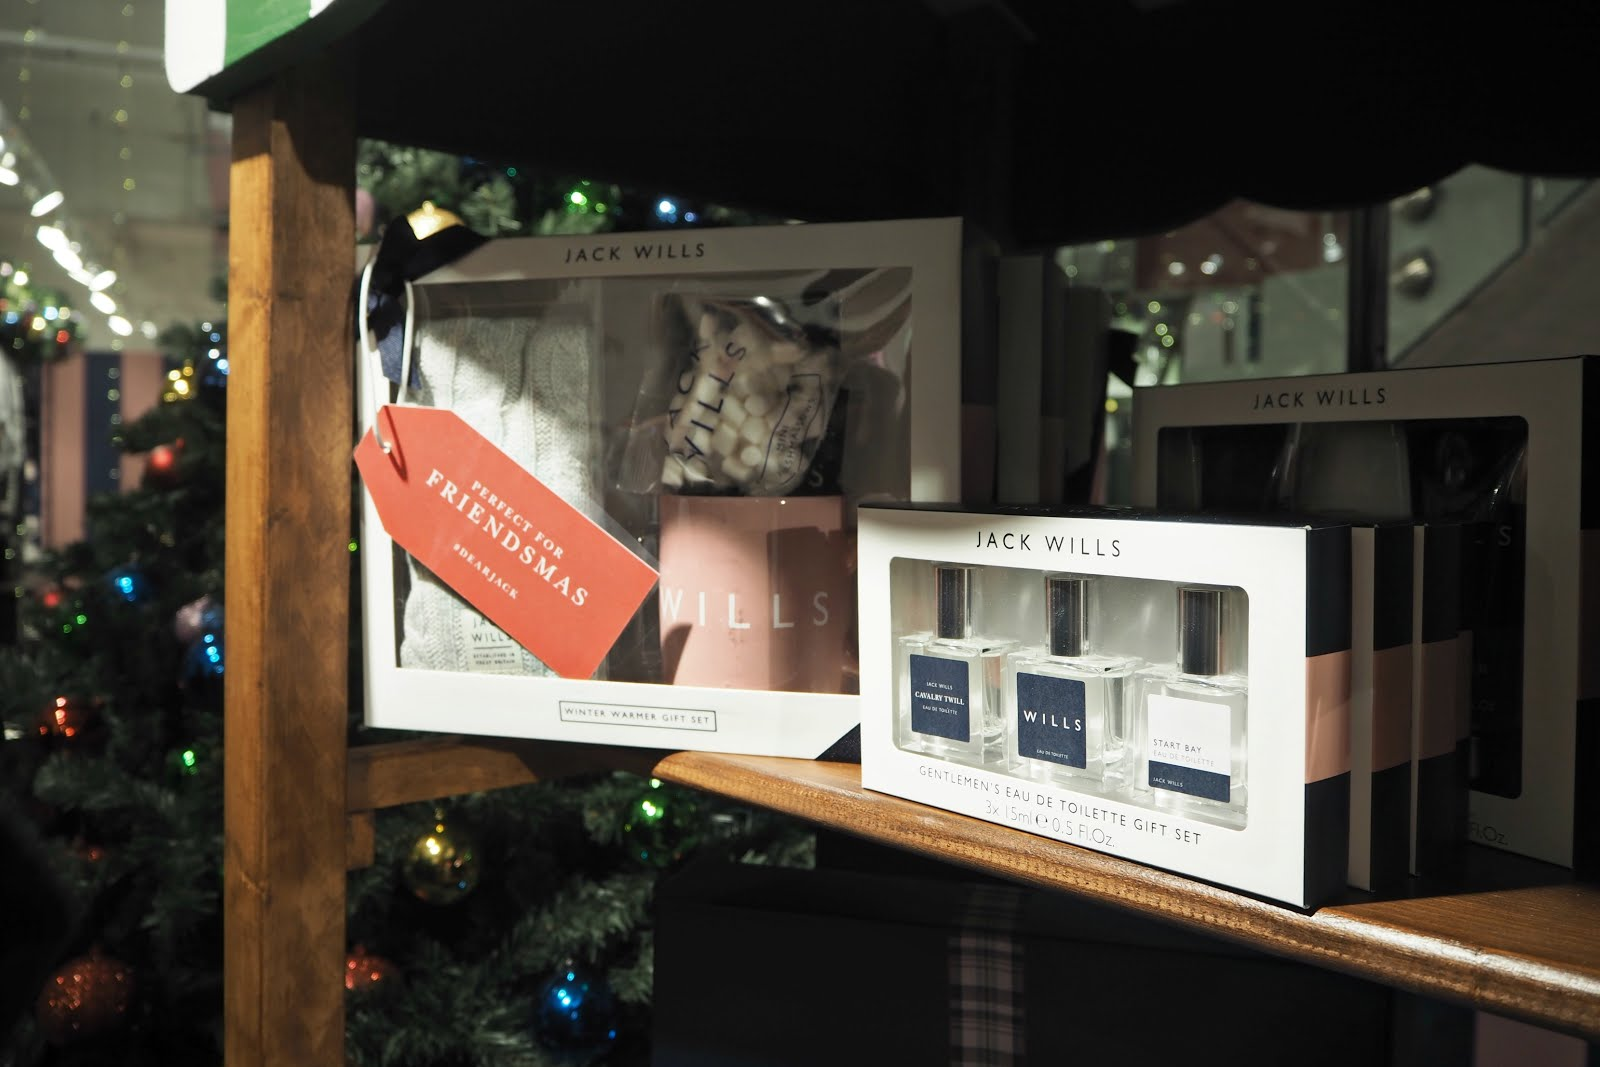 jack wills gift guide, copper garden